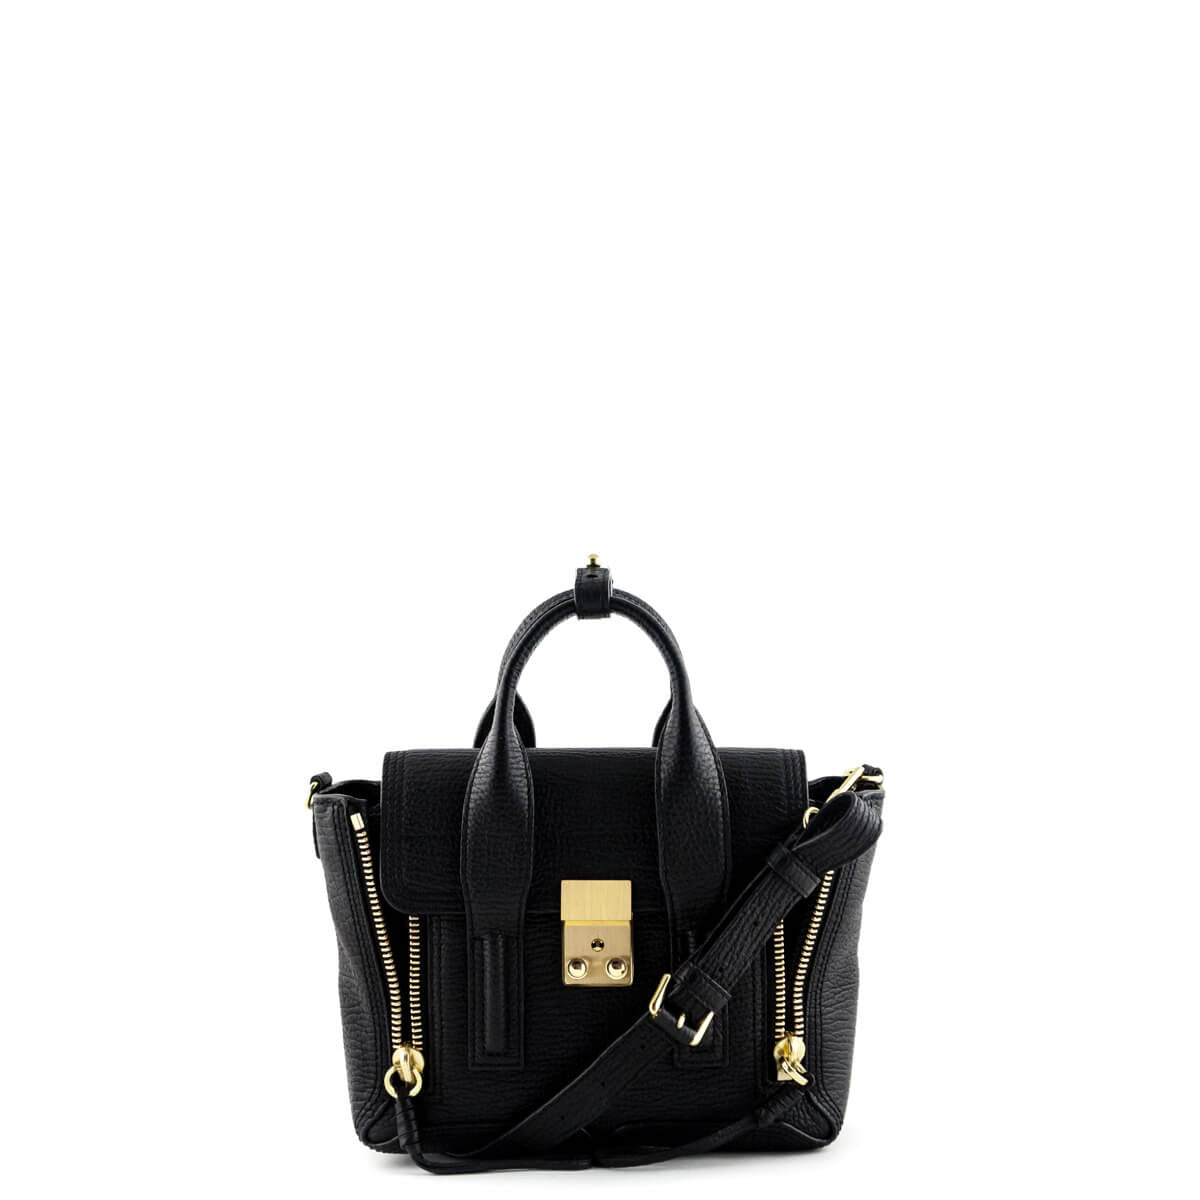 10ae7ecce205 3.1 Phillip Lim Black Leather Mini Pashli - LOVE that BAG - Preowned  Authentic Designer Handbags ...